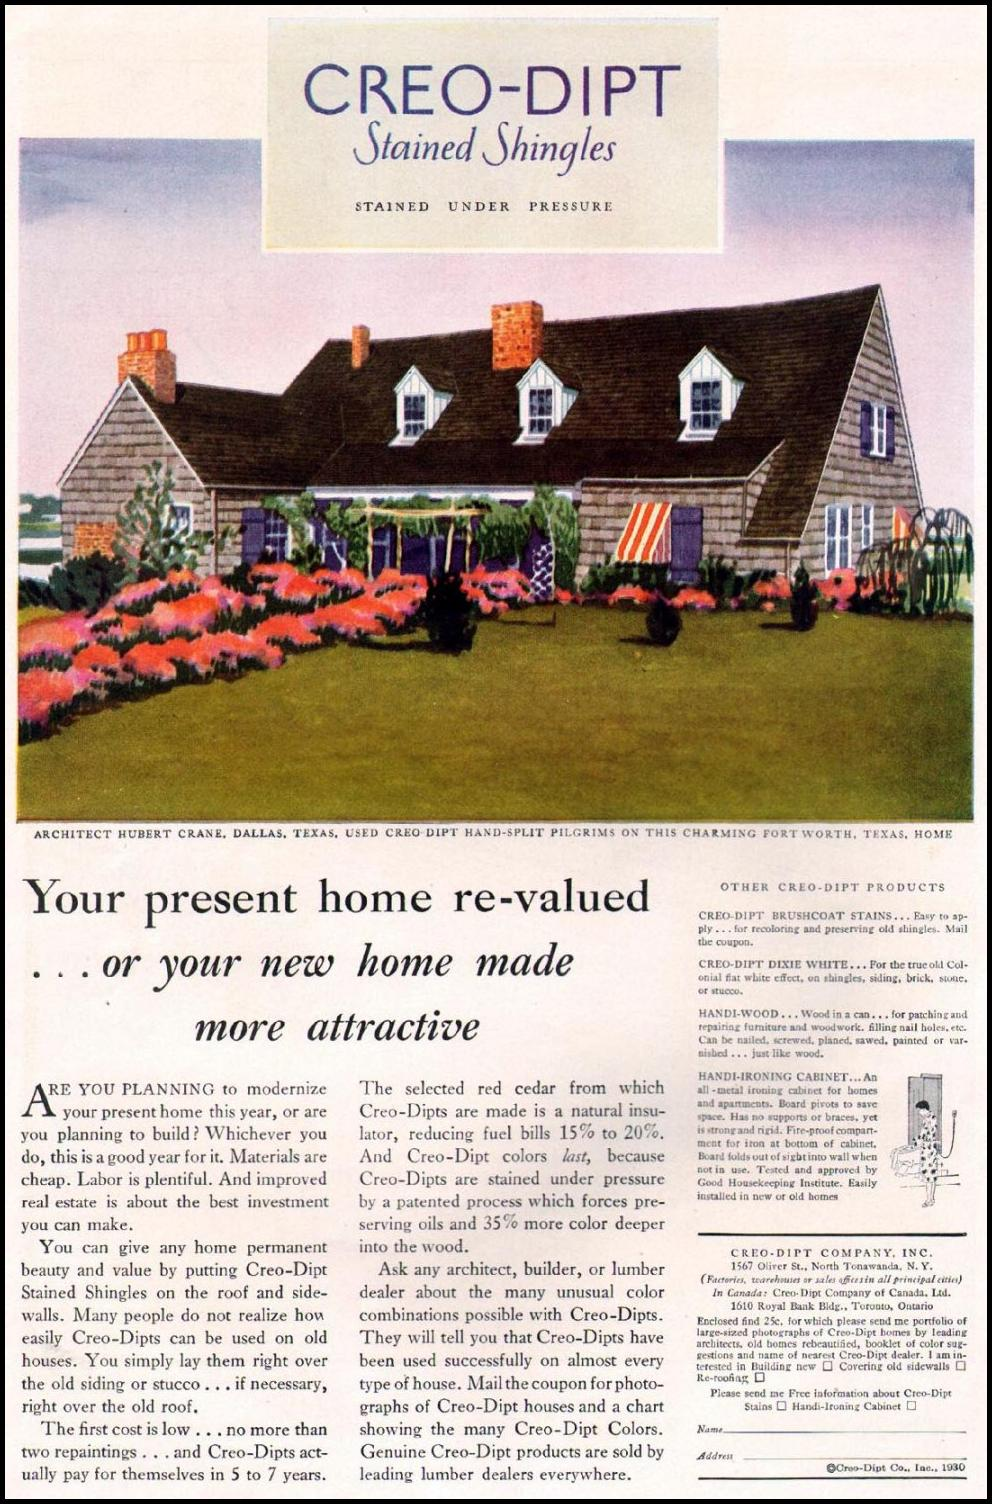 CREO-DIPT STAINED SHINGLES BETTER HOMES AND GARDENS 10/01/1930 p. 76